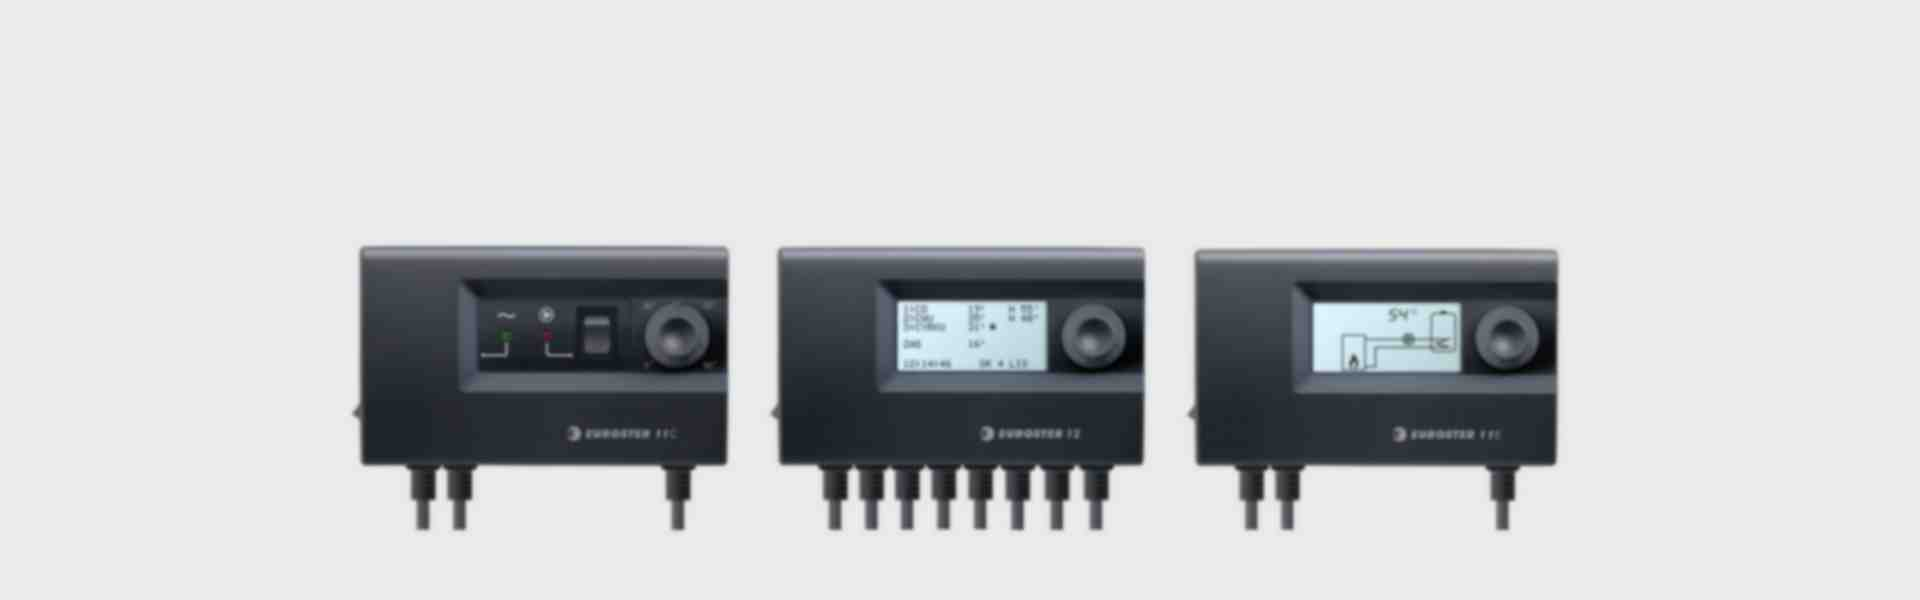 Central heating pump controllers